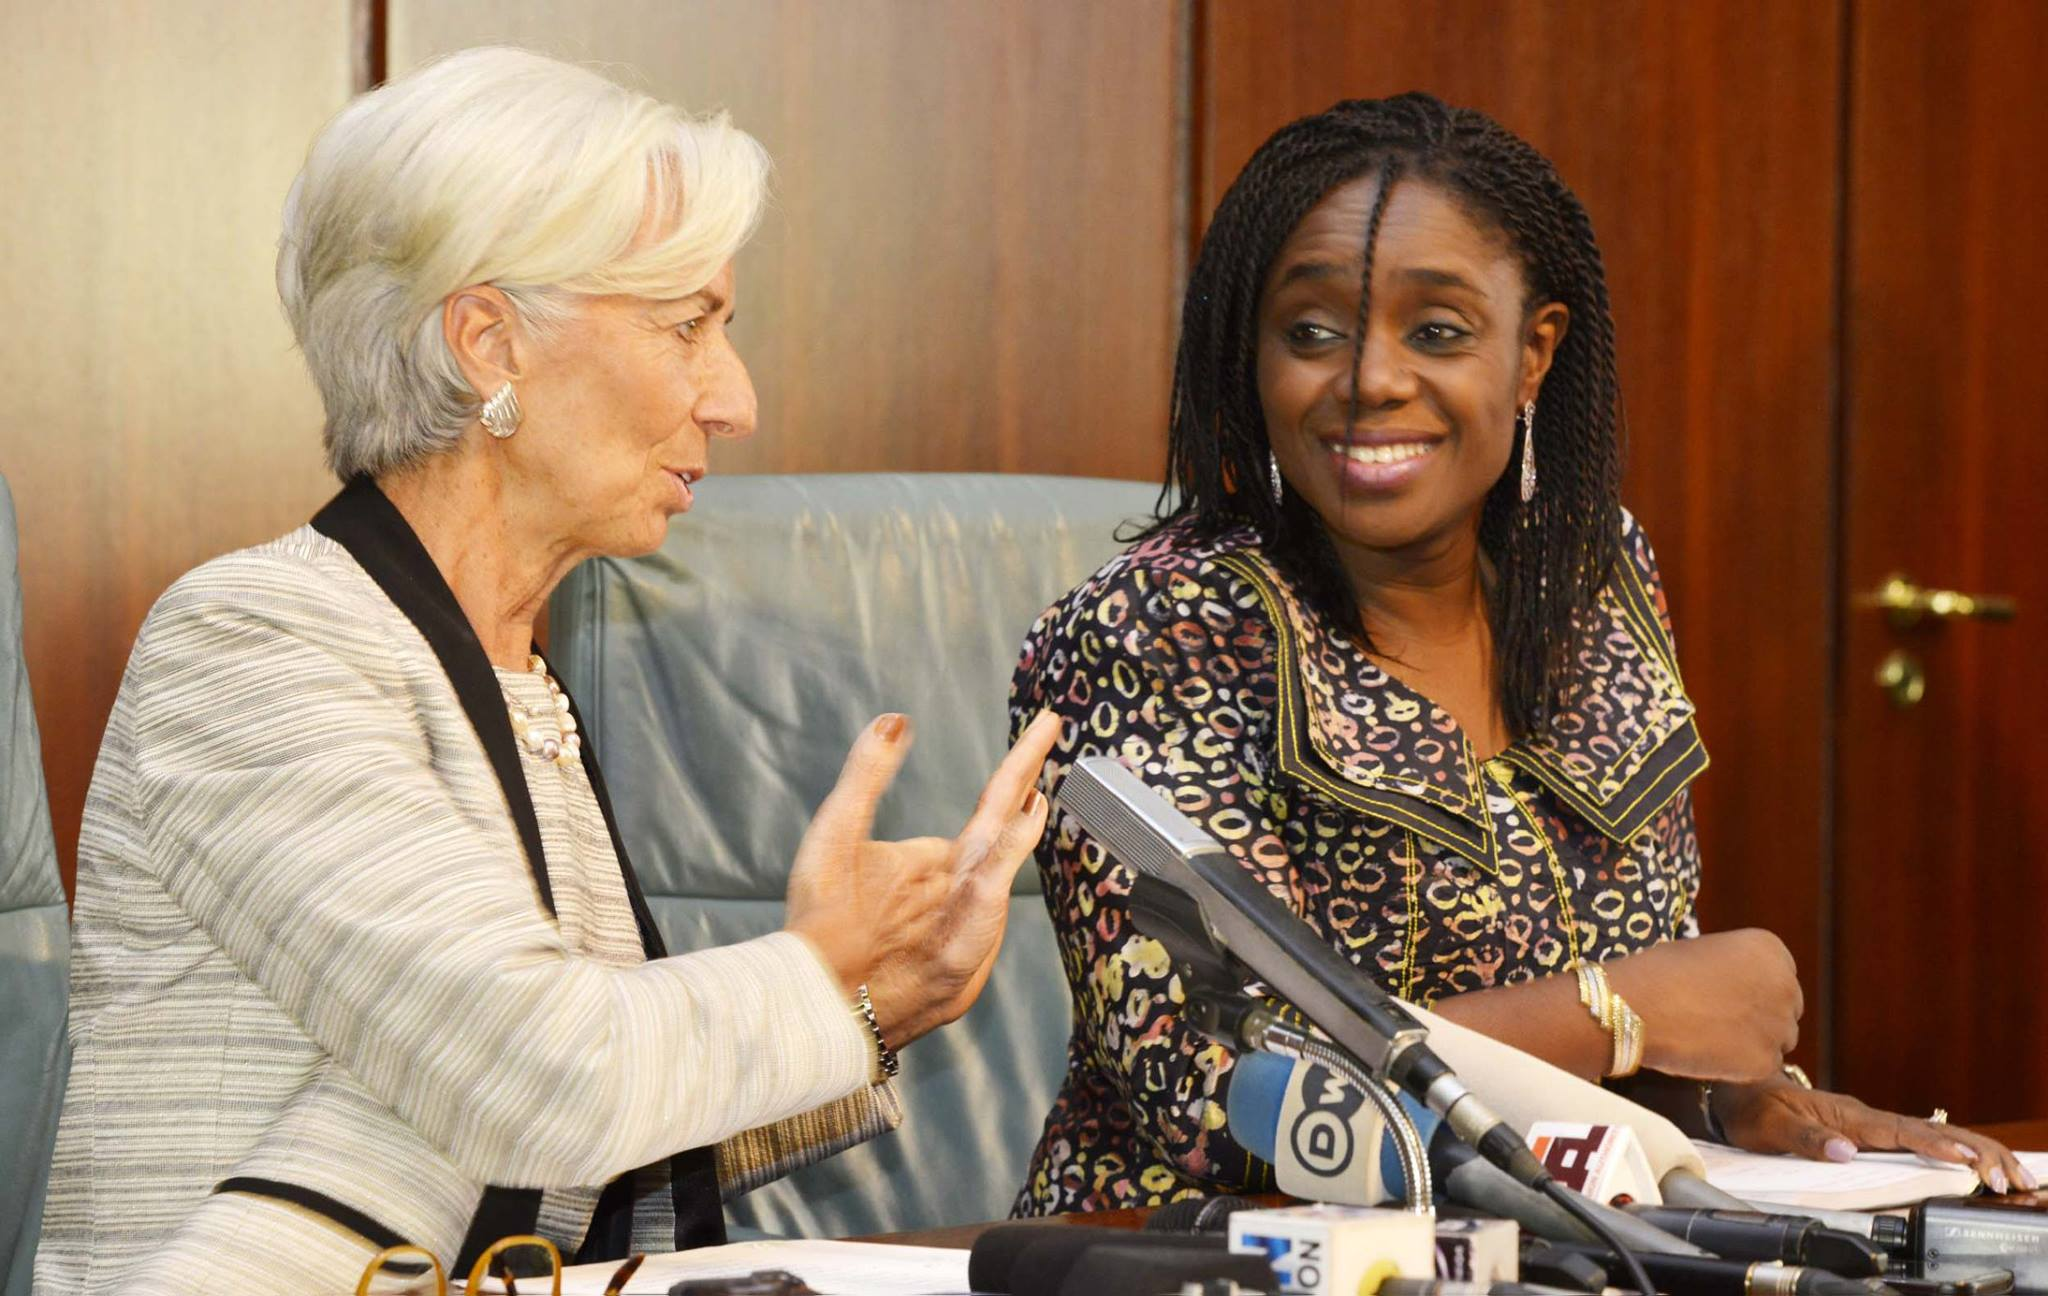 IMF managing director Christine Lagarde  with Nigeria's finance minister Kemi Adeosun during the former's recent visit to Nigeria